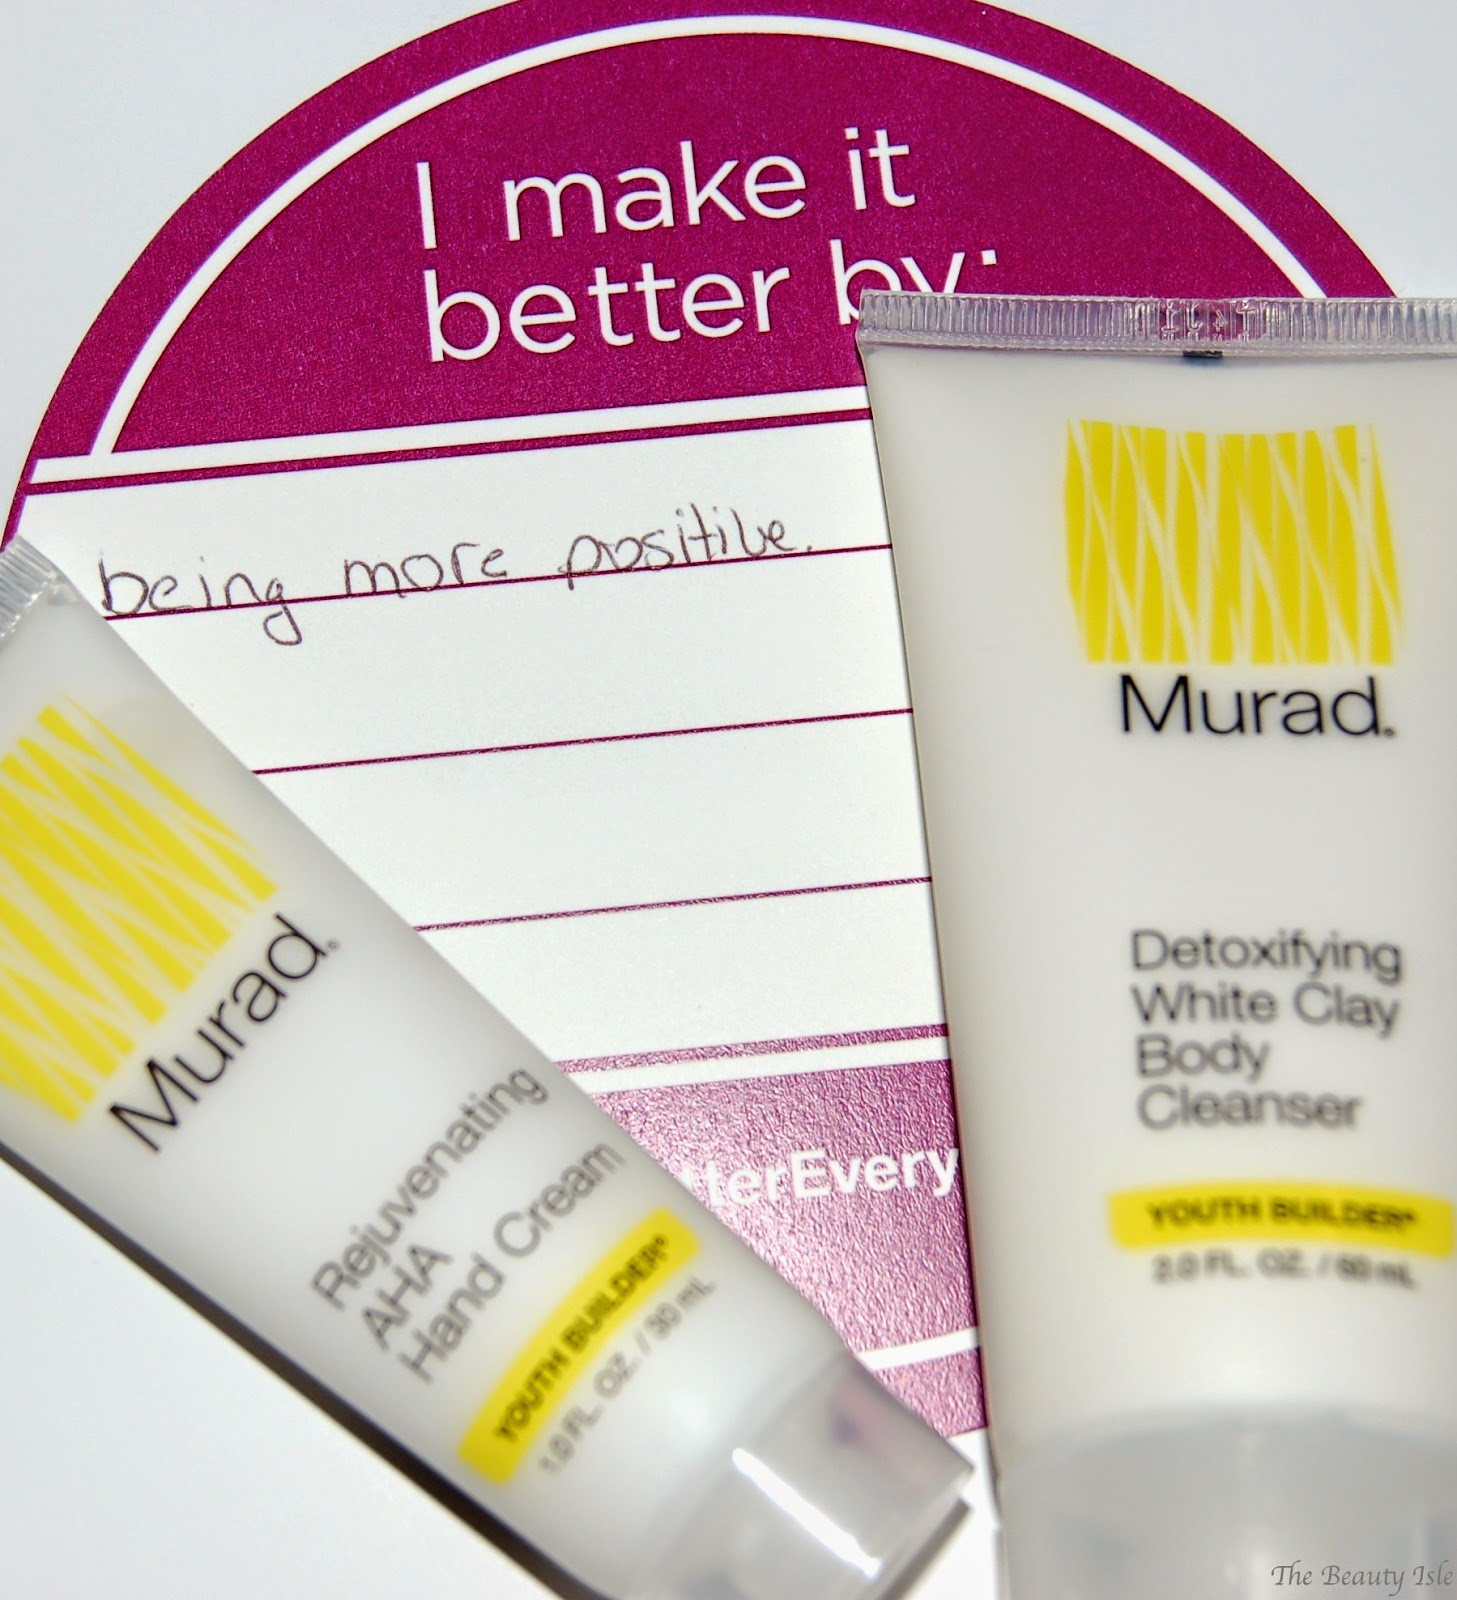 Murad High Performance Youth Builder Bodycare Preview Kit, #bettereveryday